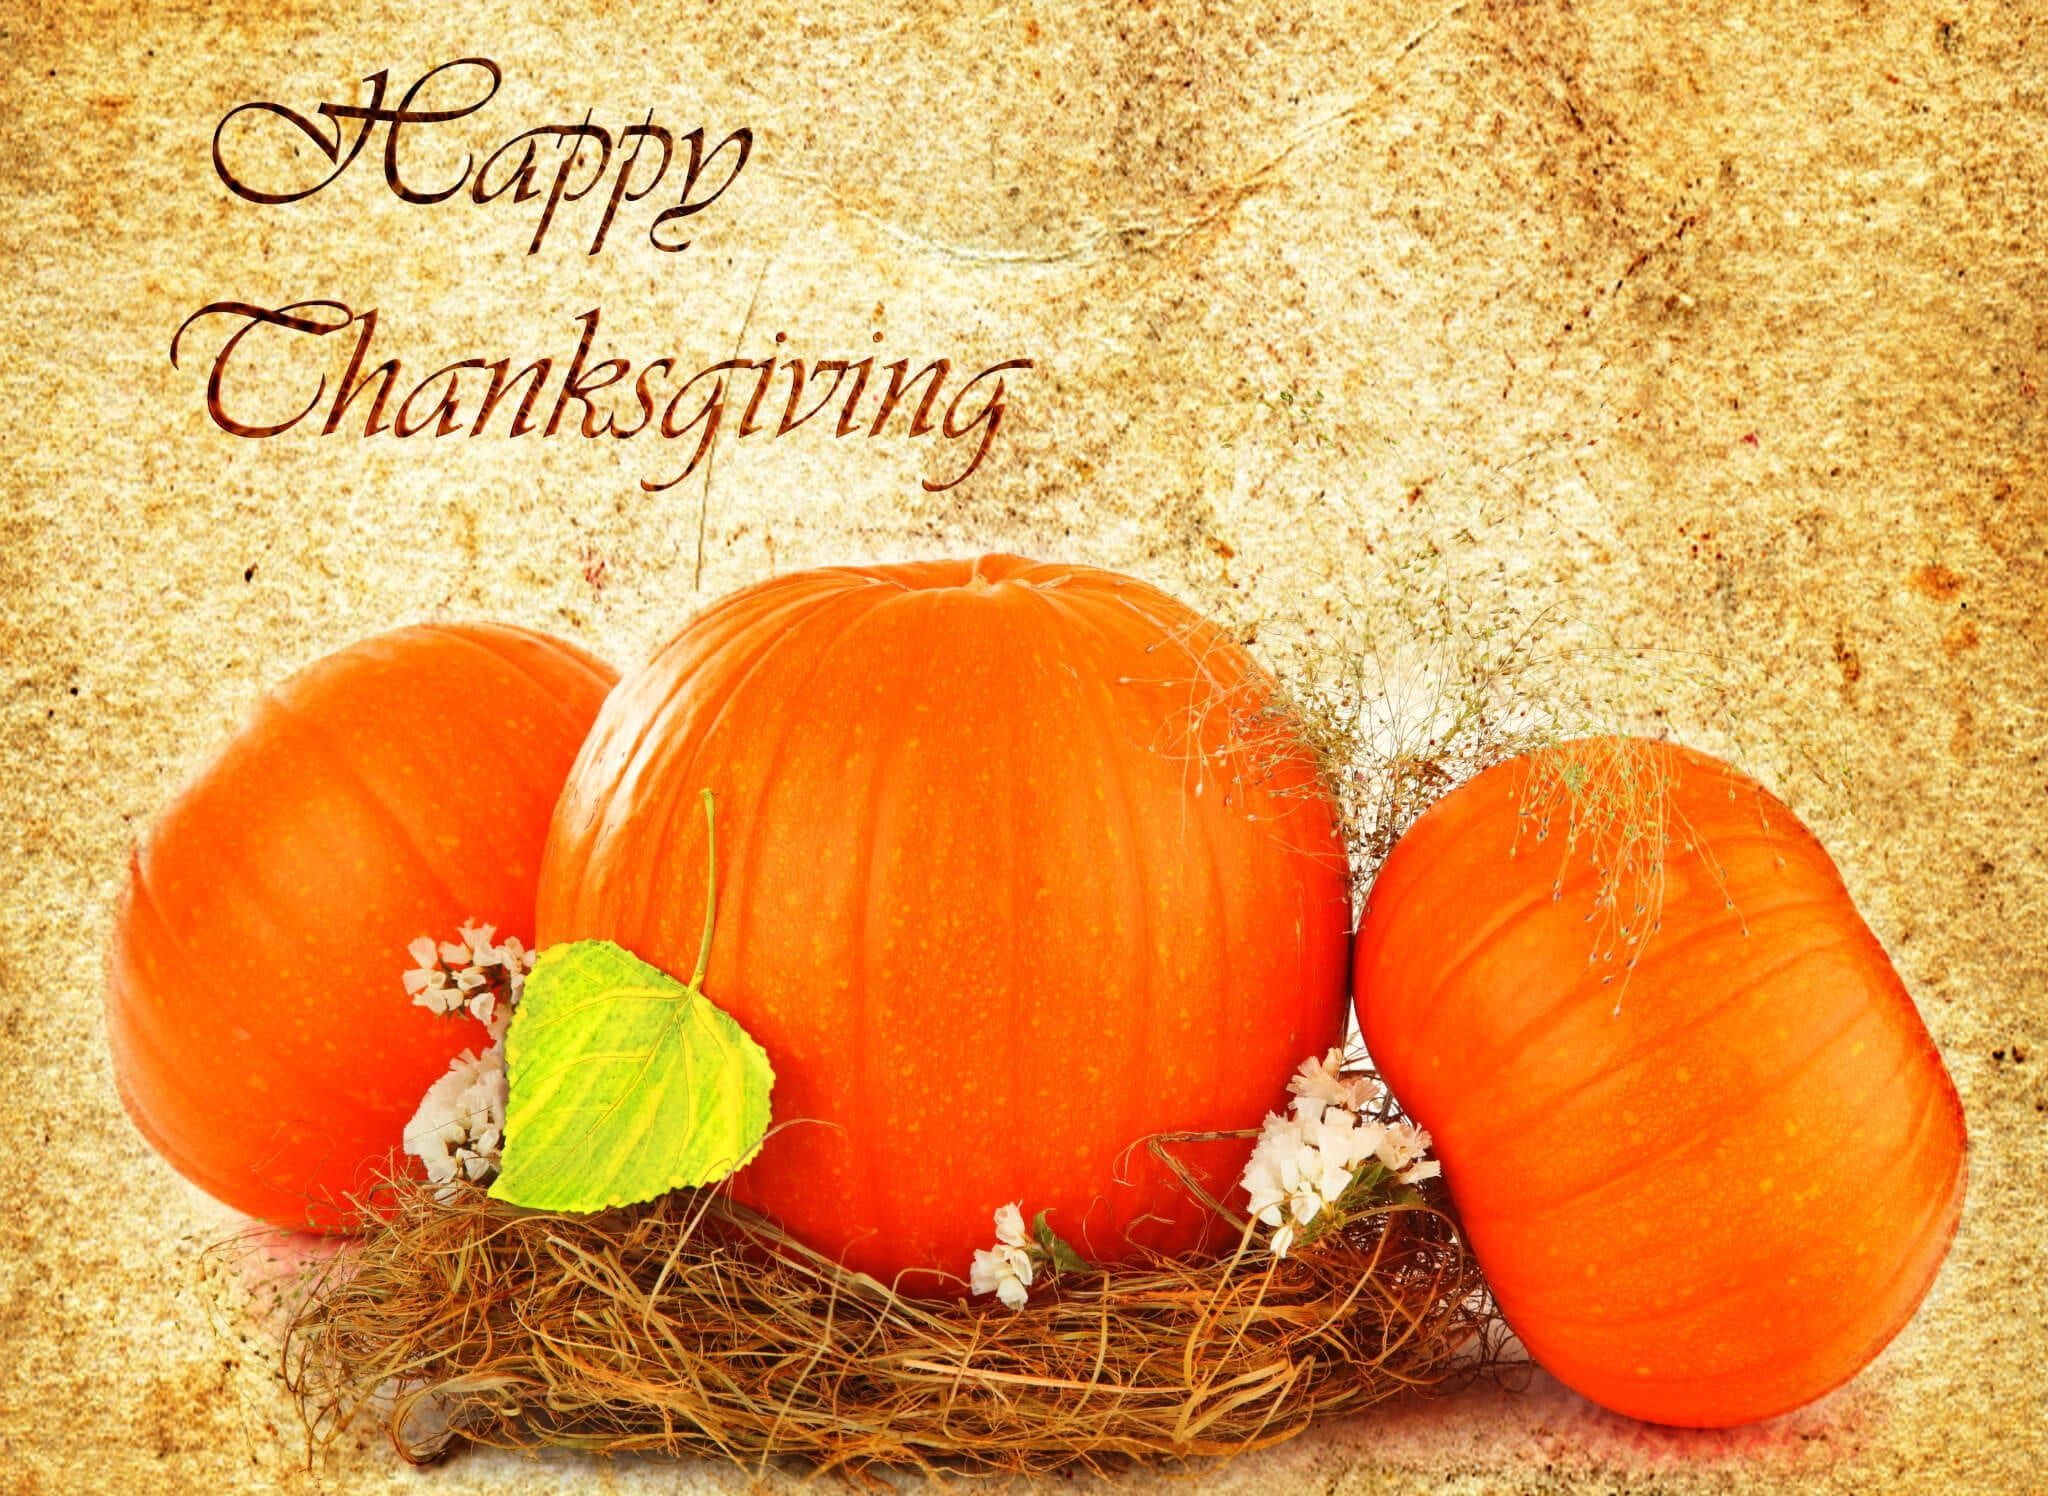 Enjoy Thanksgiving At The Village Inn The Village Inn Known As One Of The Best Restaurants I Holiday Greeting Cards Holidays Thanksgiving Thanksgiving Images